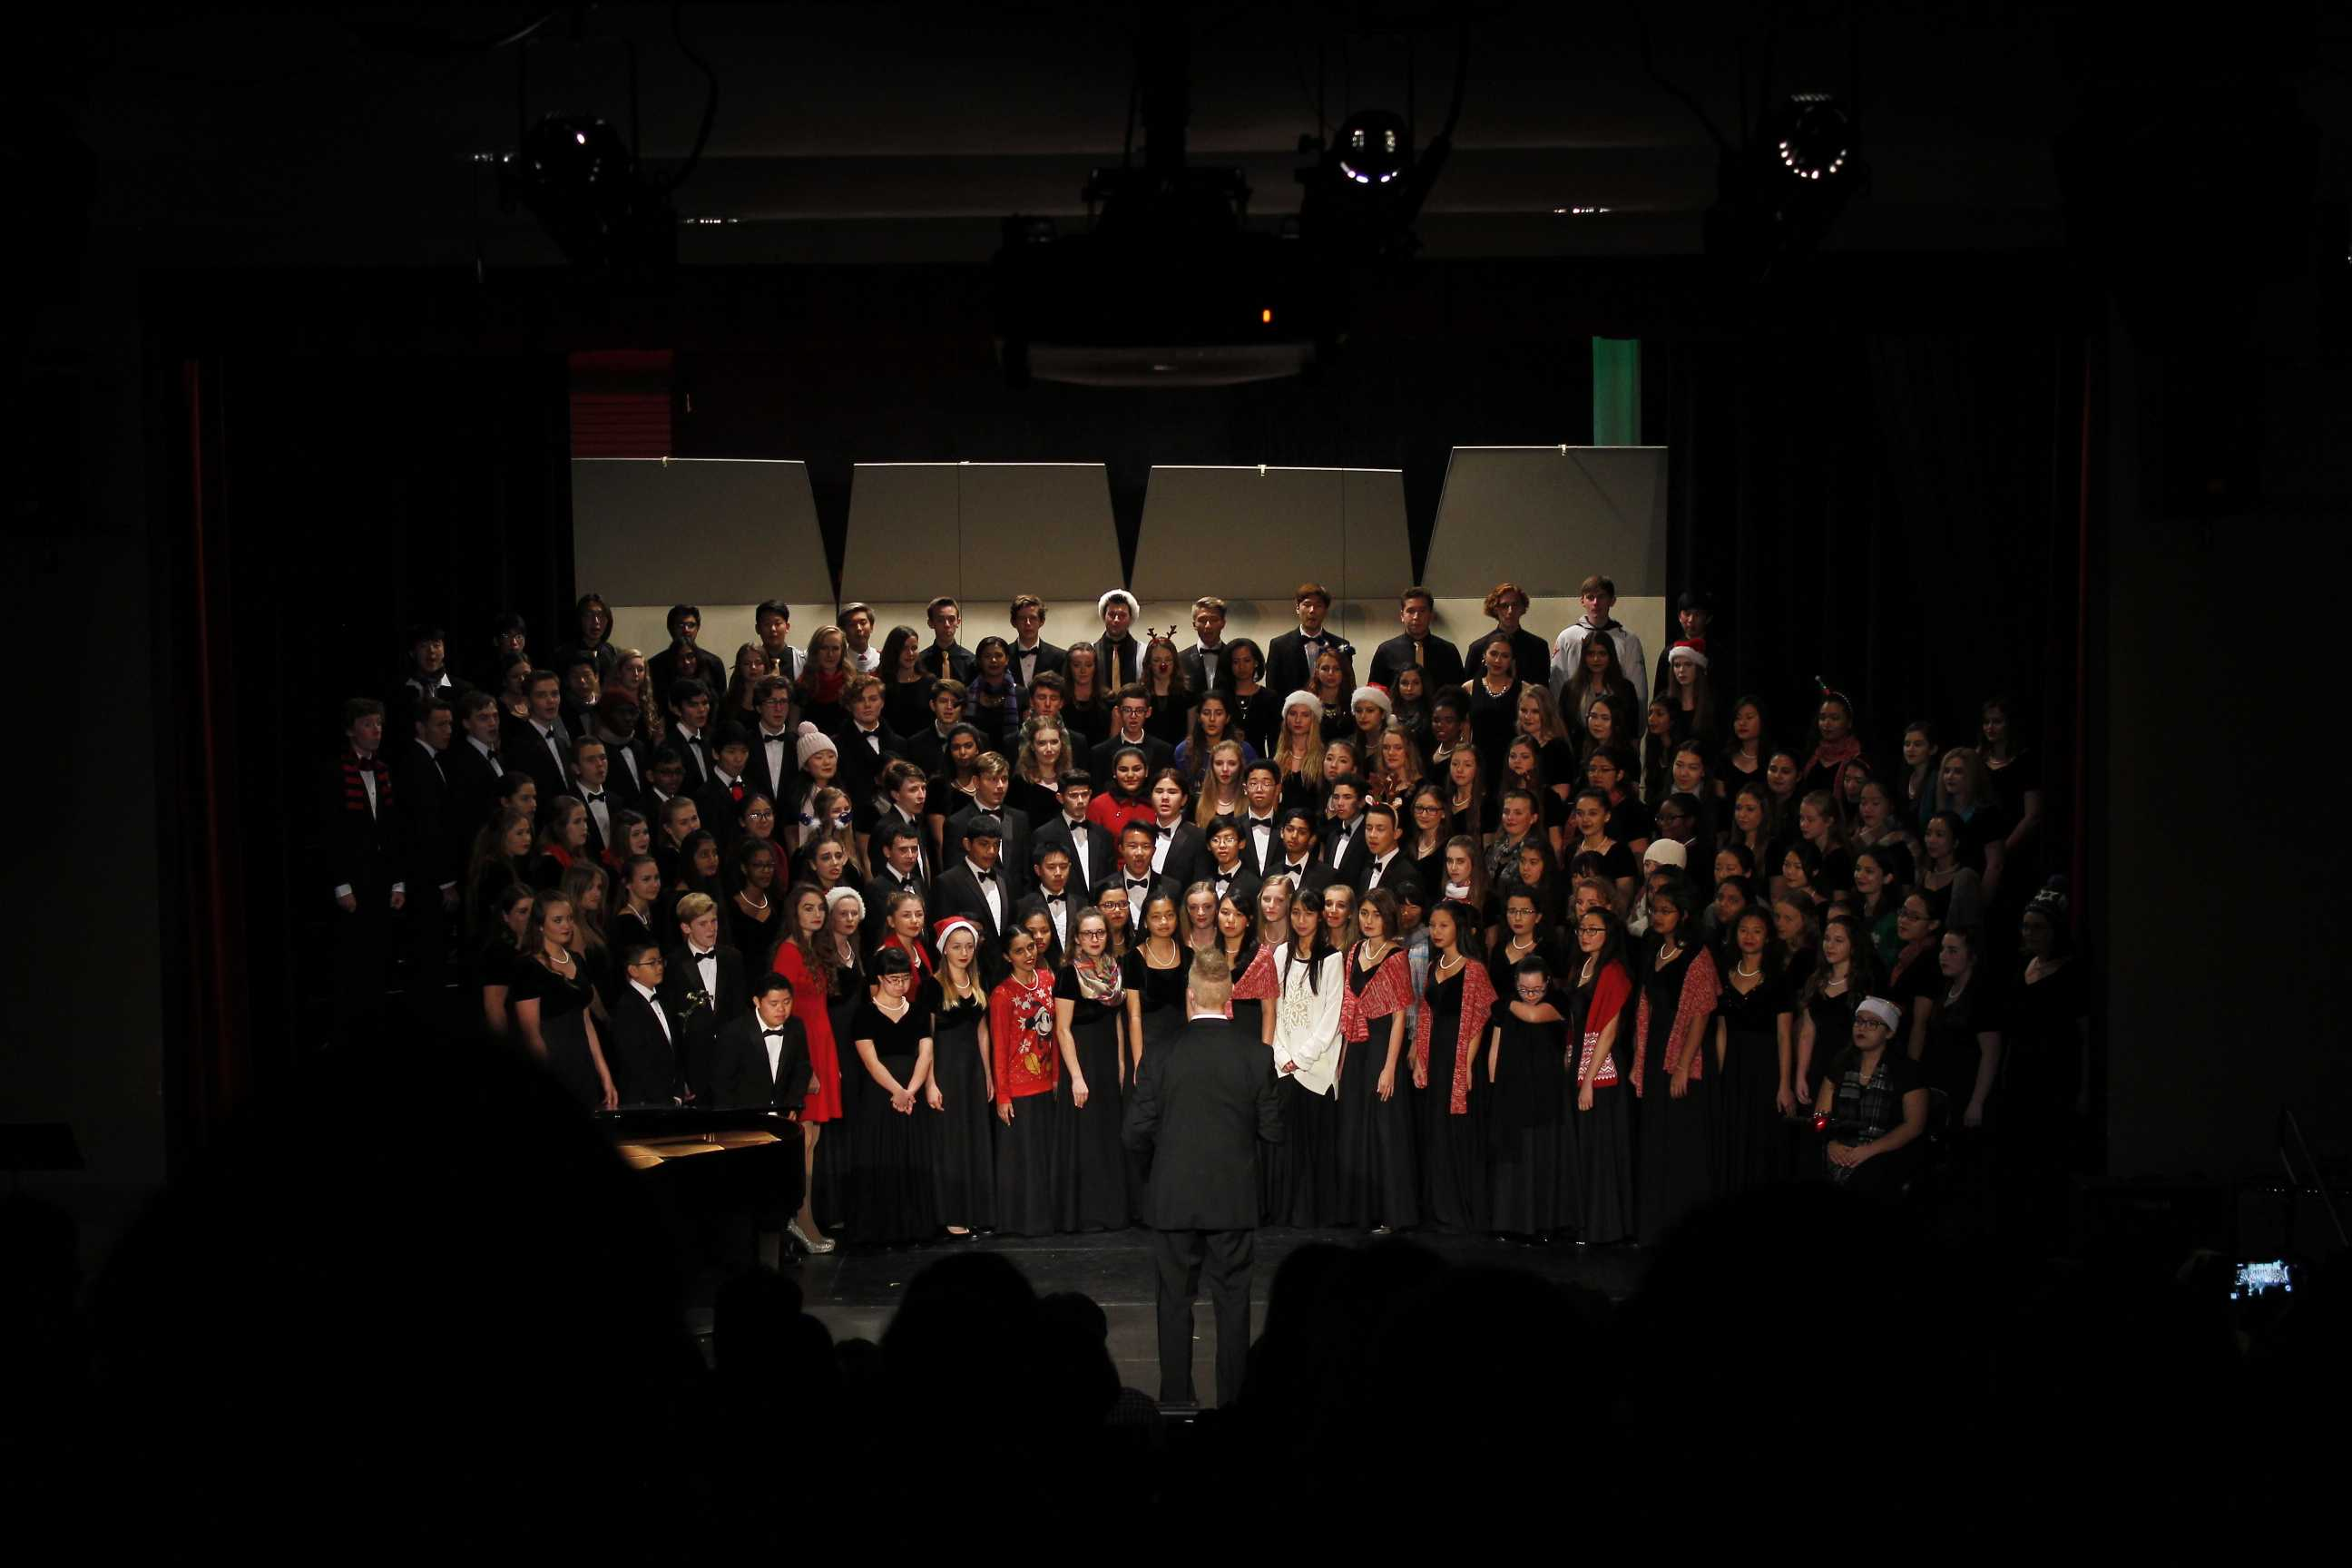 All choirs come together for the opening song